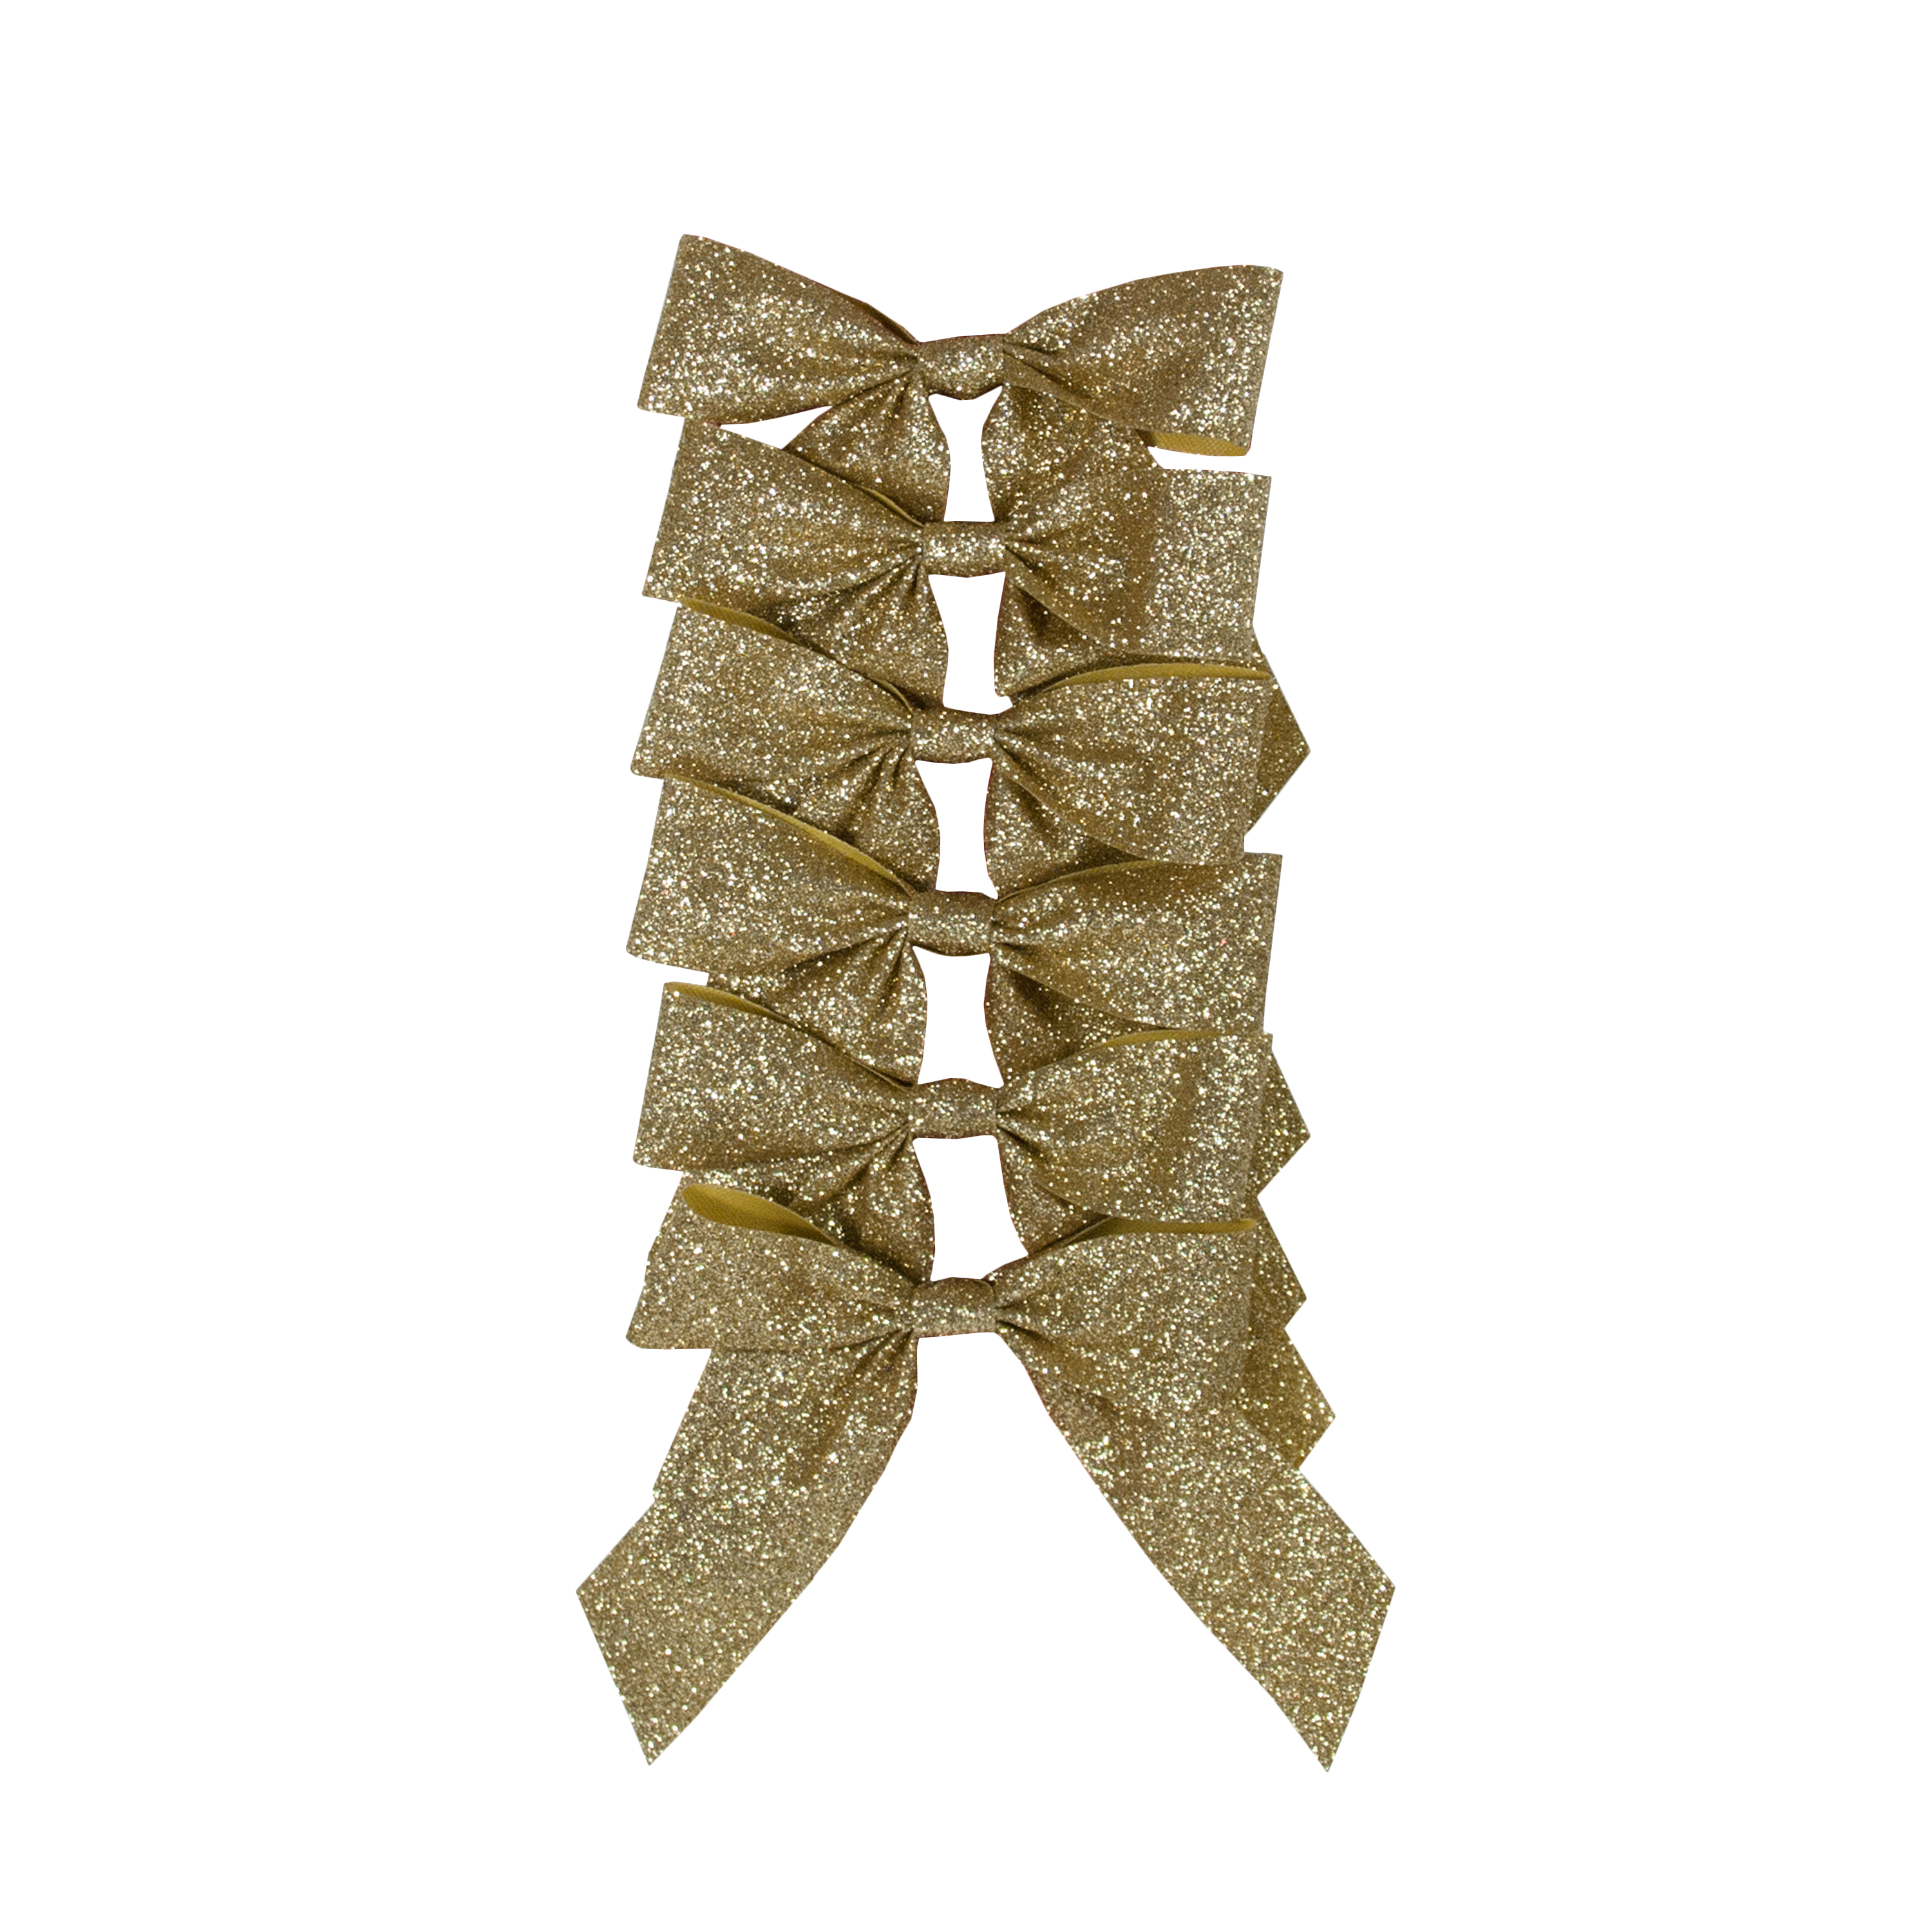 HOLIDAY TIME GOLD GLITTER BOWS, 6 COUNT